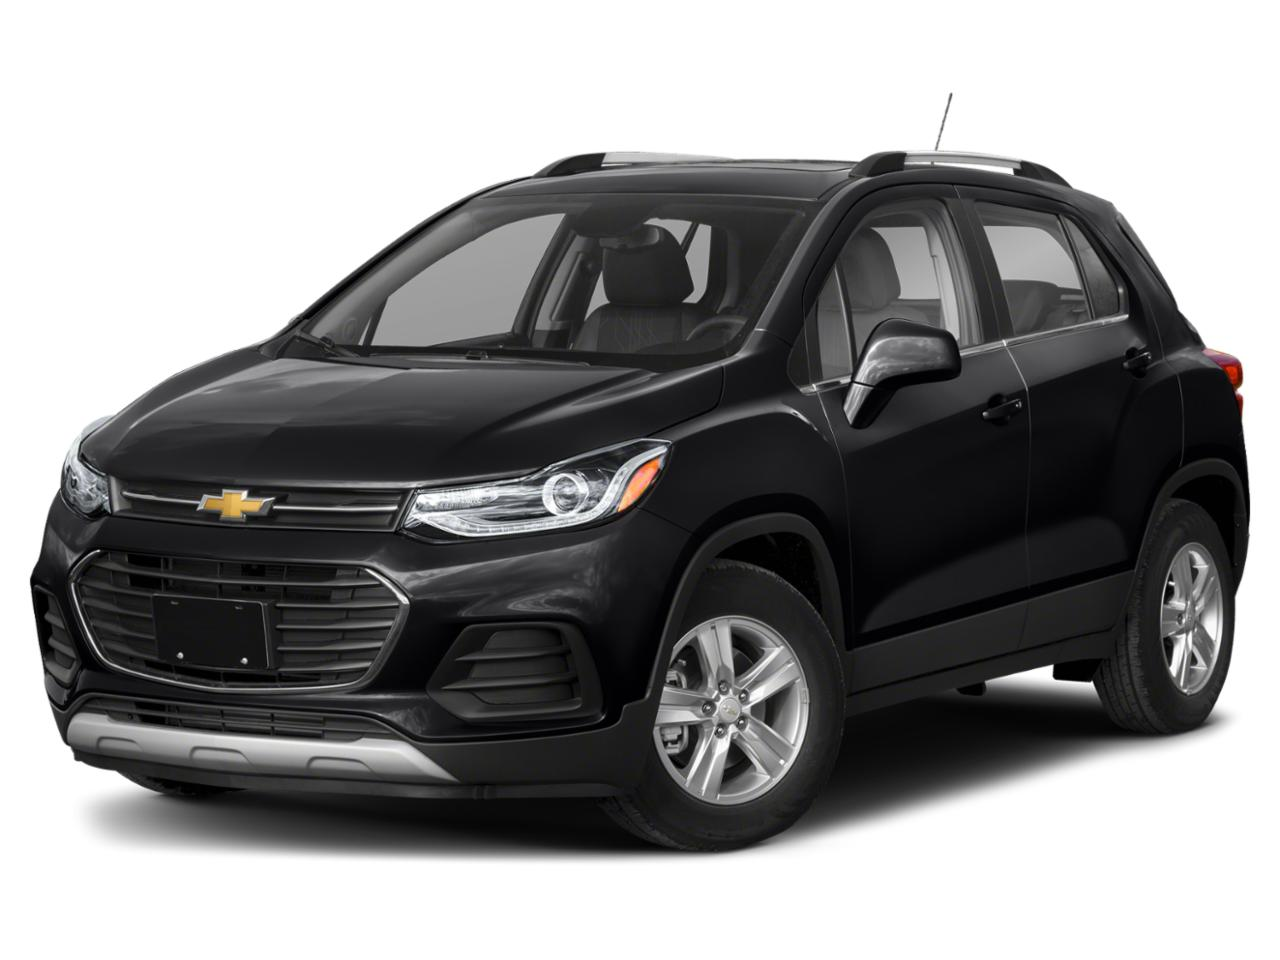 2021 Chevrolet Trax Vehicle Photo in Neenah, WI 54956